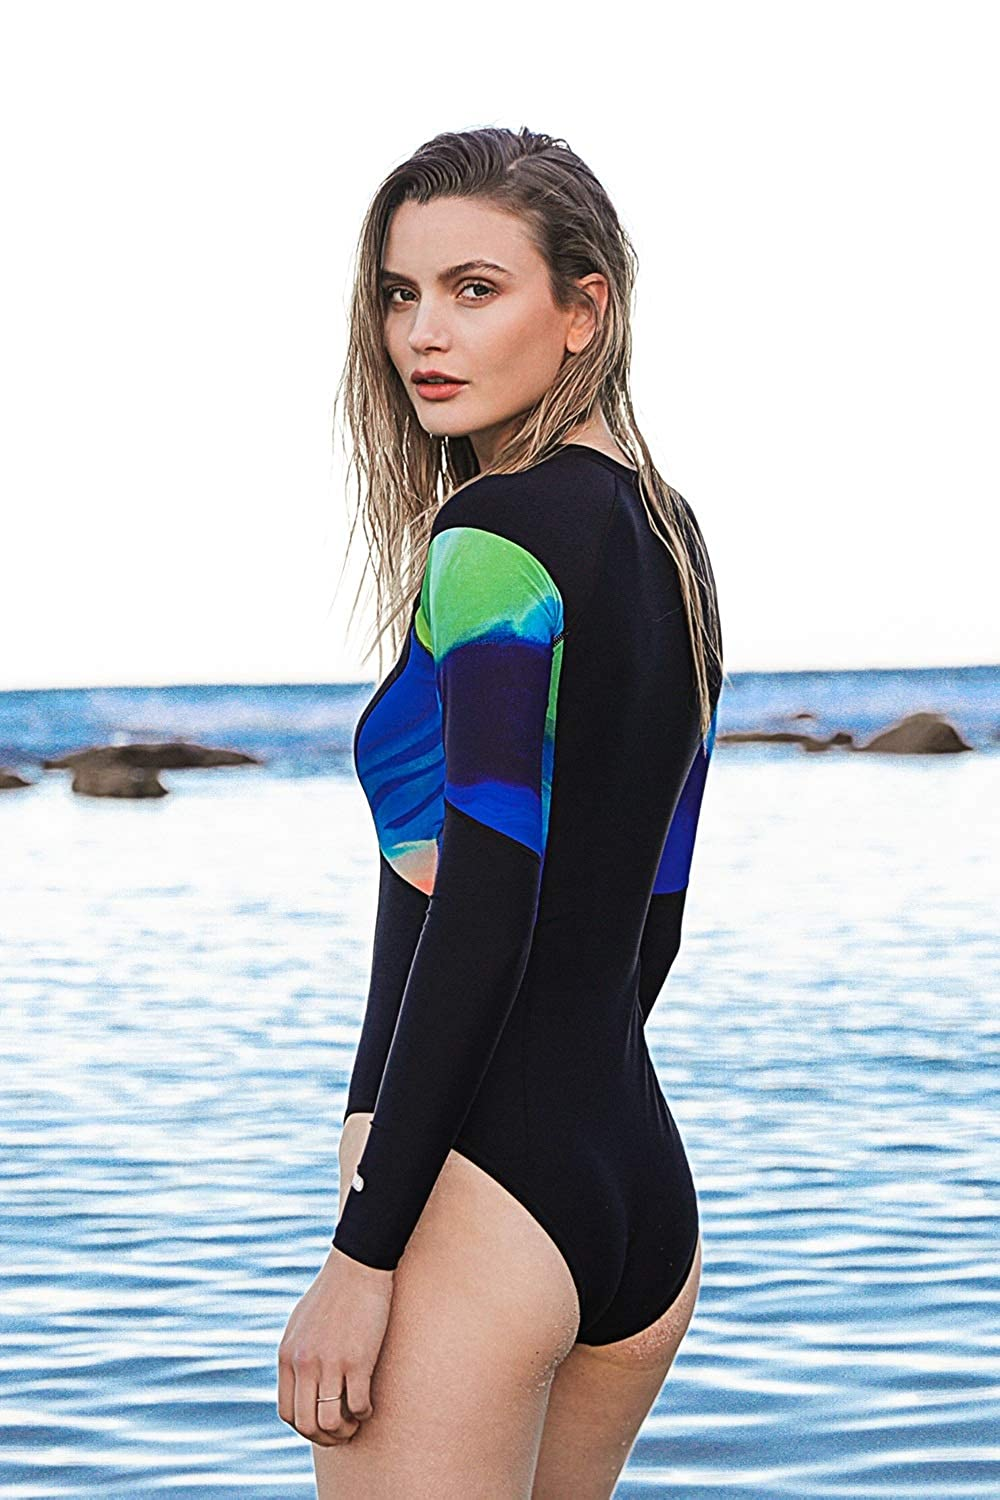 c5924f30d91 AXESEA Womens Long Sleeve Rash Guard UV UPF 50+ Sun Protection Printed  Zipper Surfing One Piece Swimsuit Bathing Suit at Amazon Women's Clothing  store: